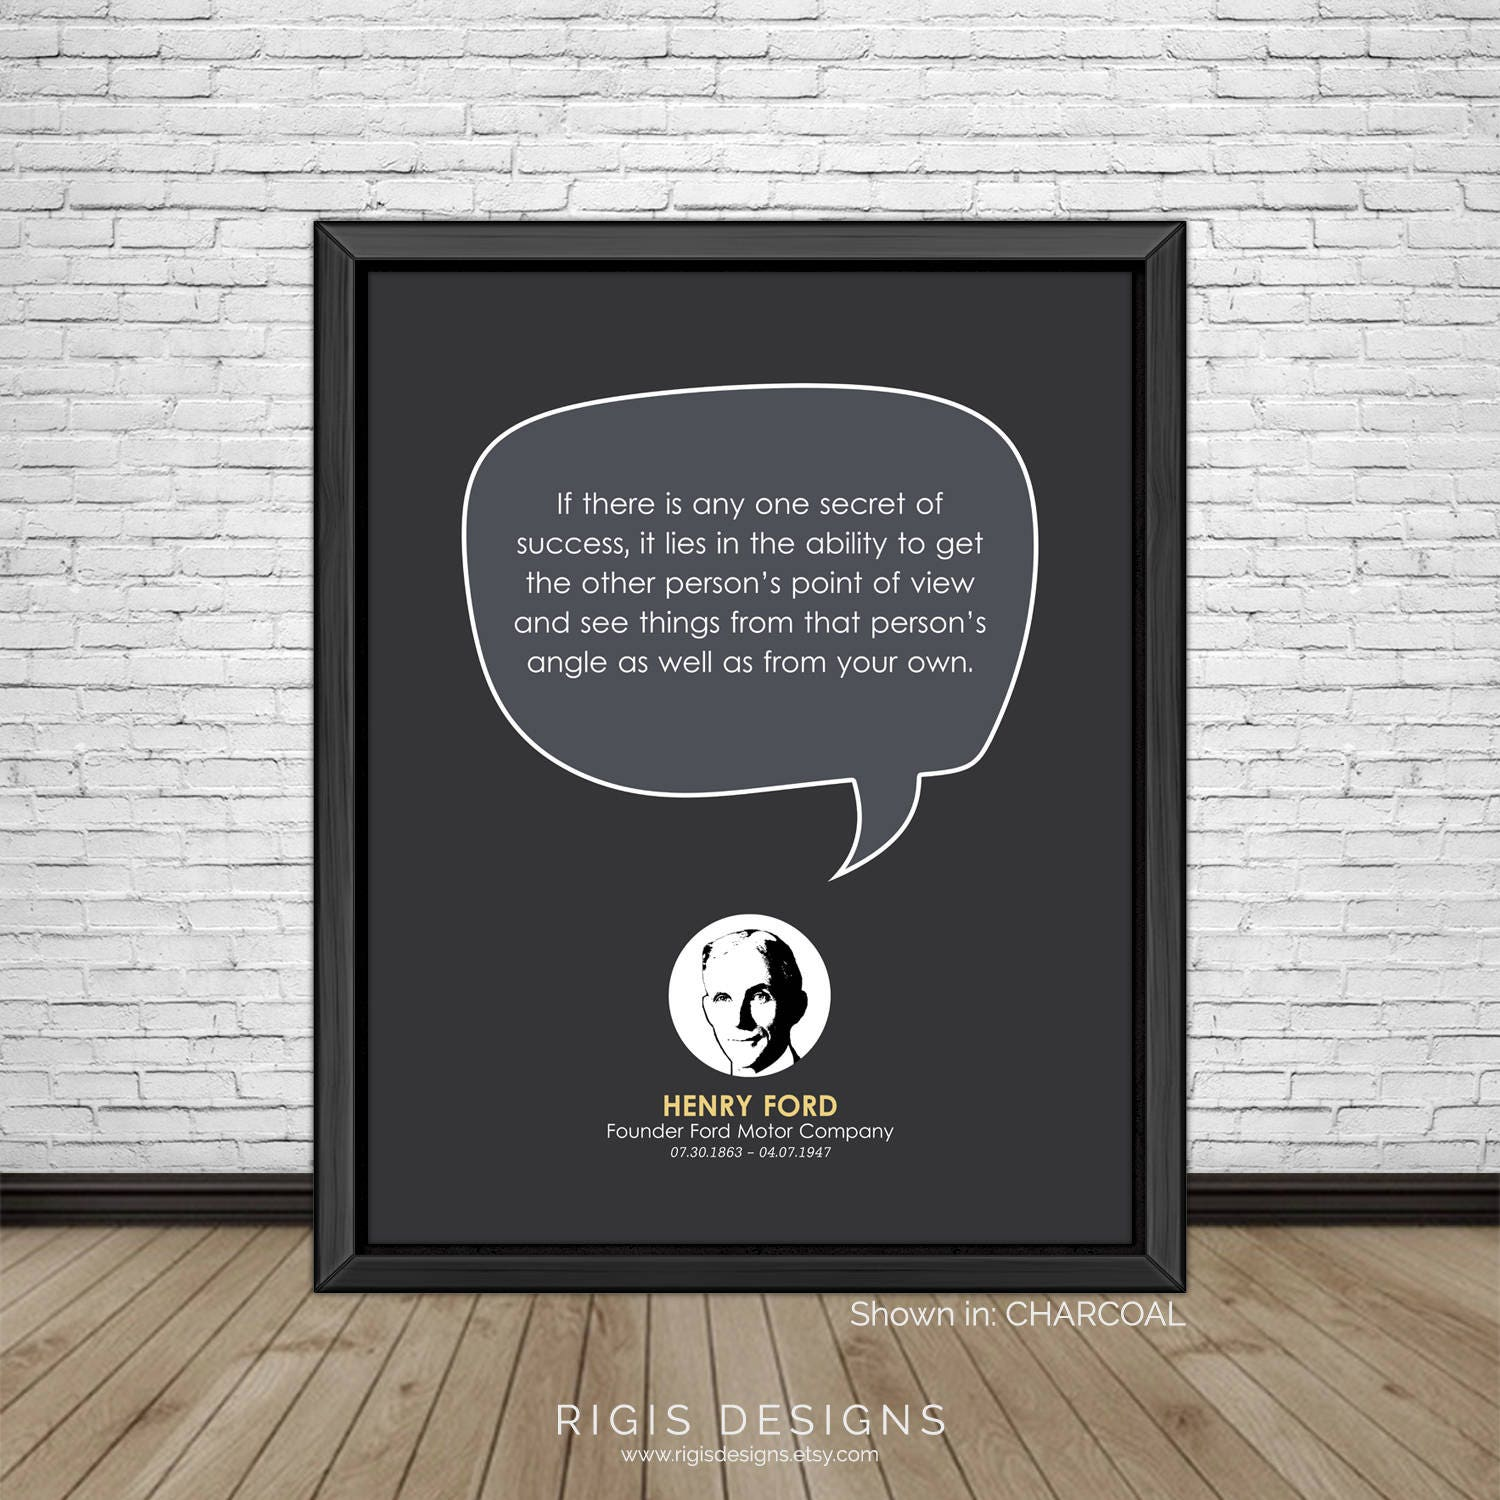 Henry Ford Quote, Entrepreneur, Founder Ford Motor Co.